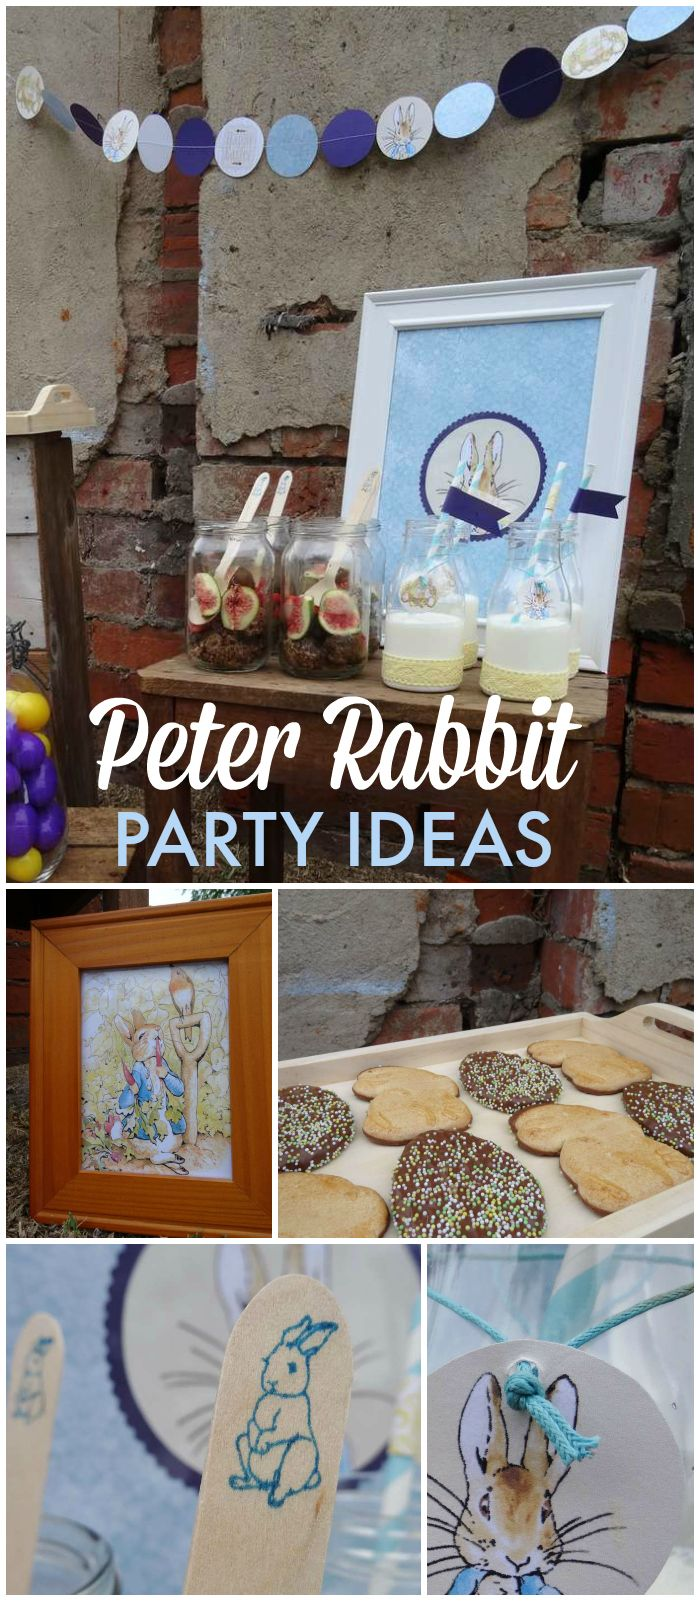 100 best Peter Rabbit images on Pinterest | Drawings, Cake and Candies